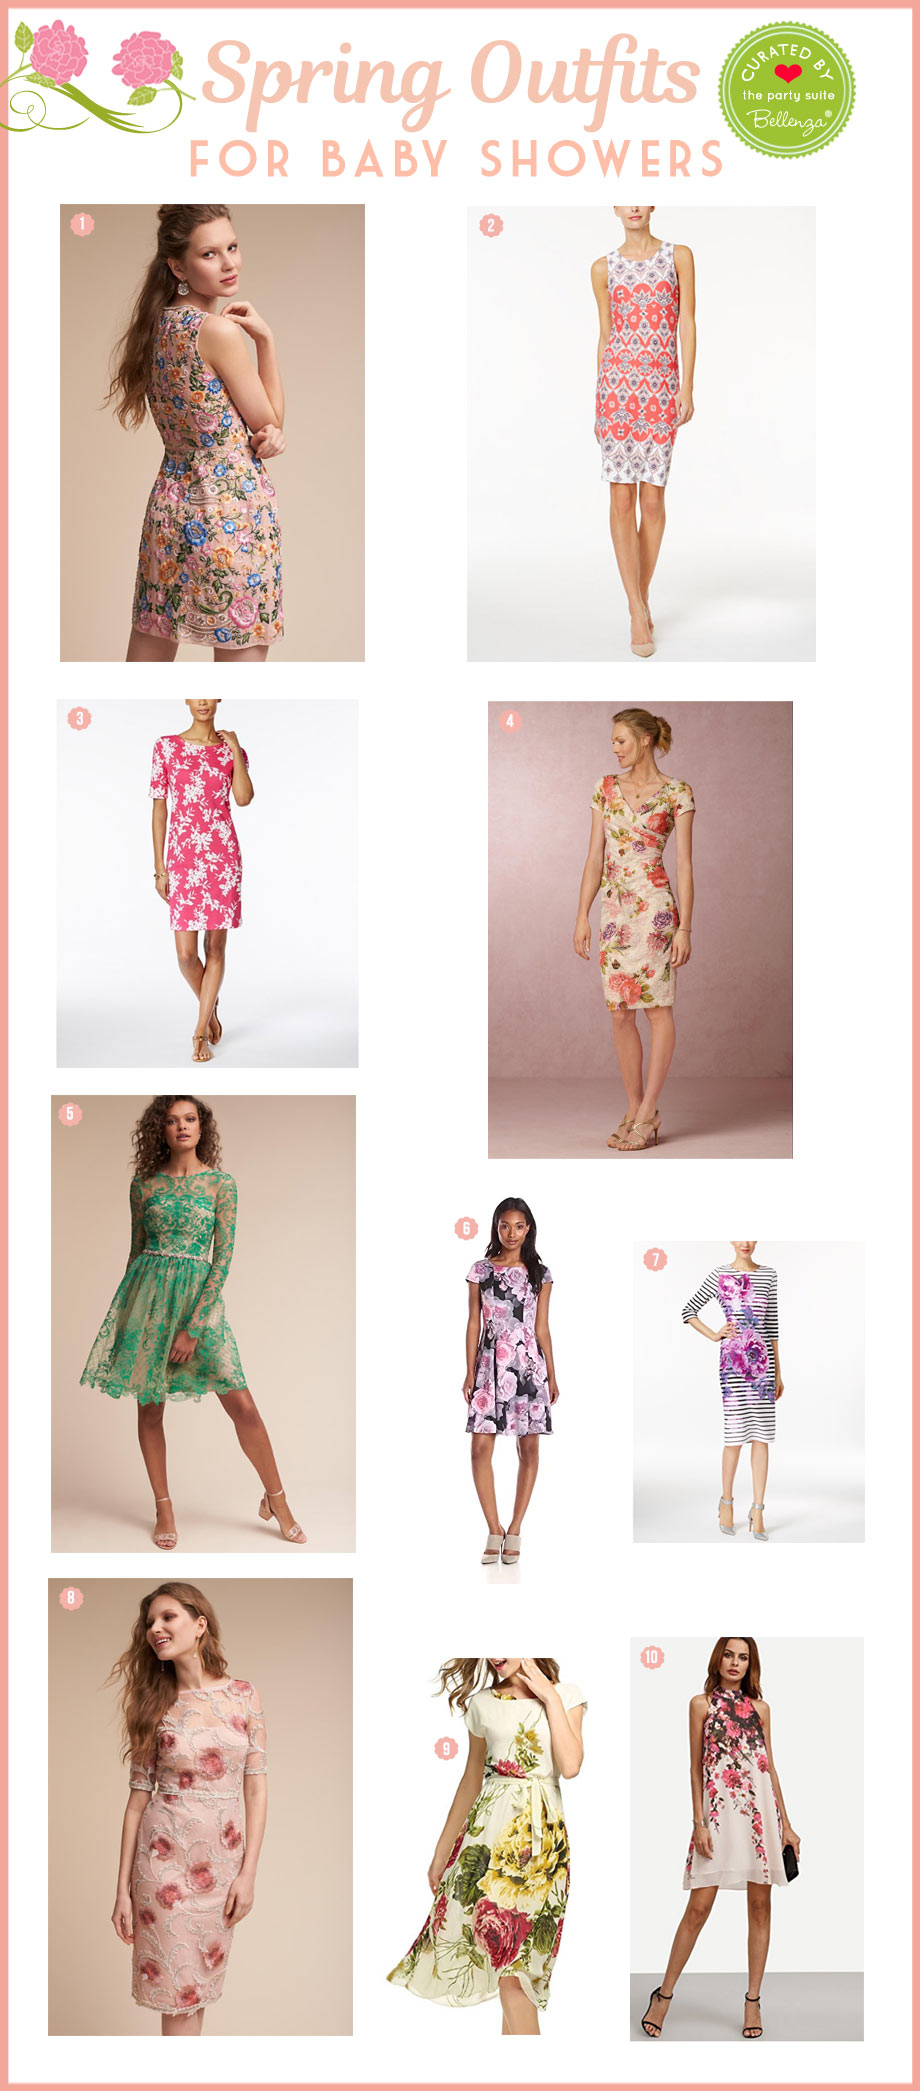 10 Spring Outfits for Baby Shower Guests